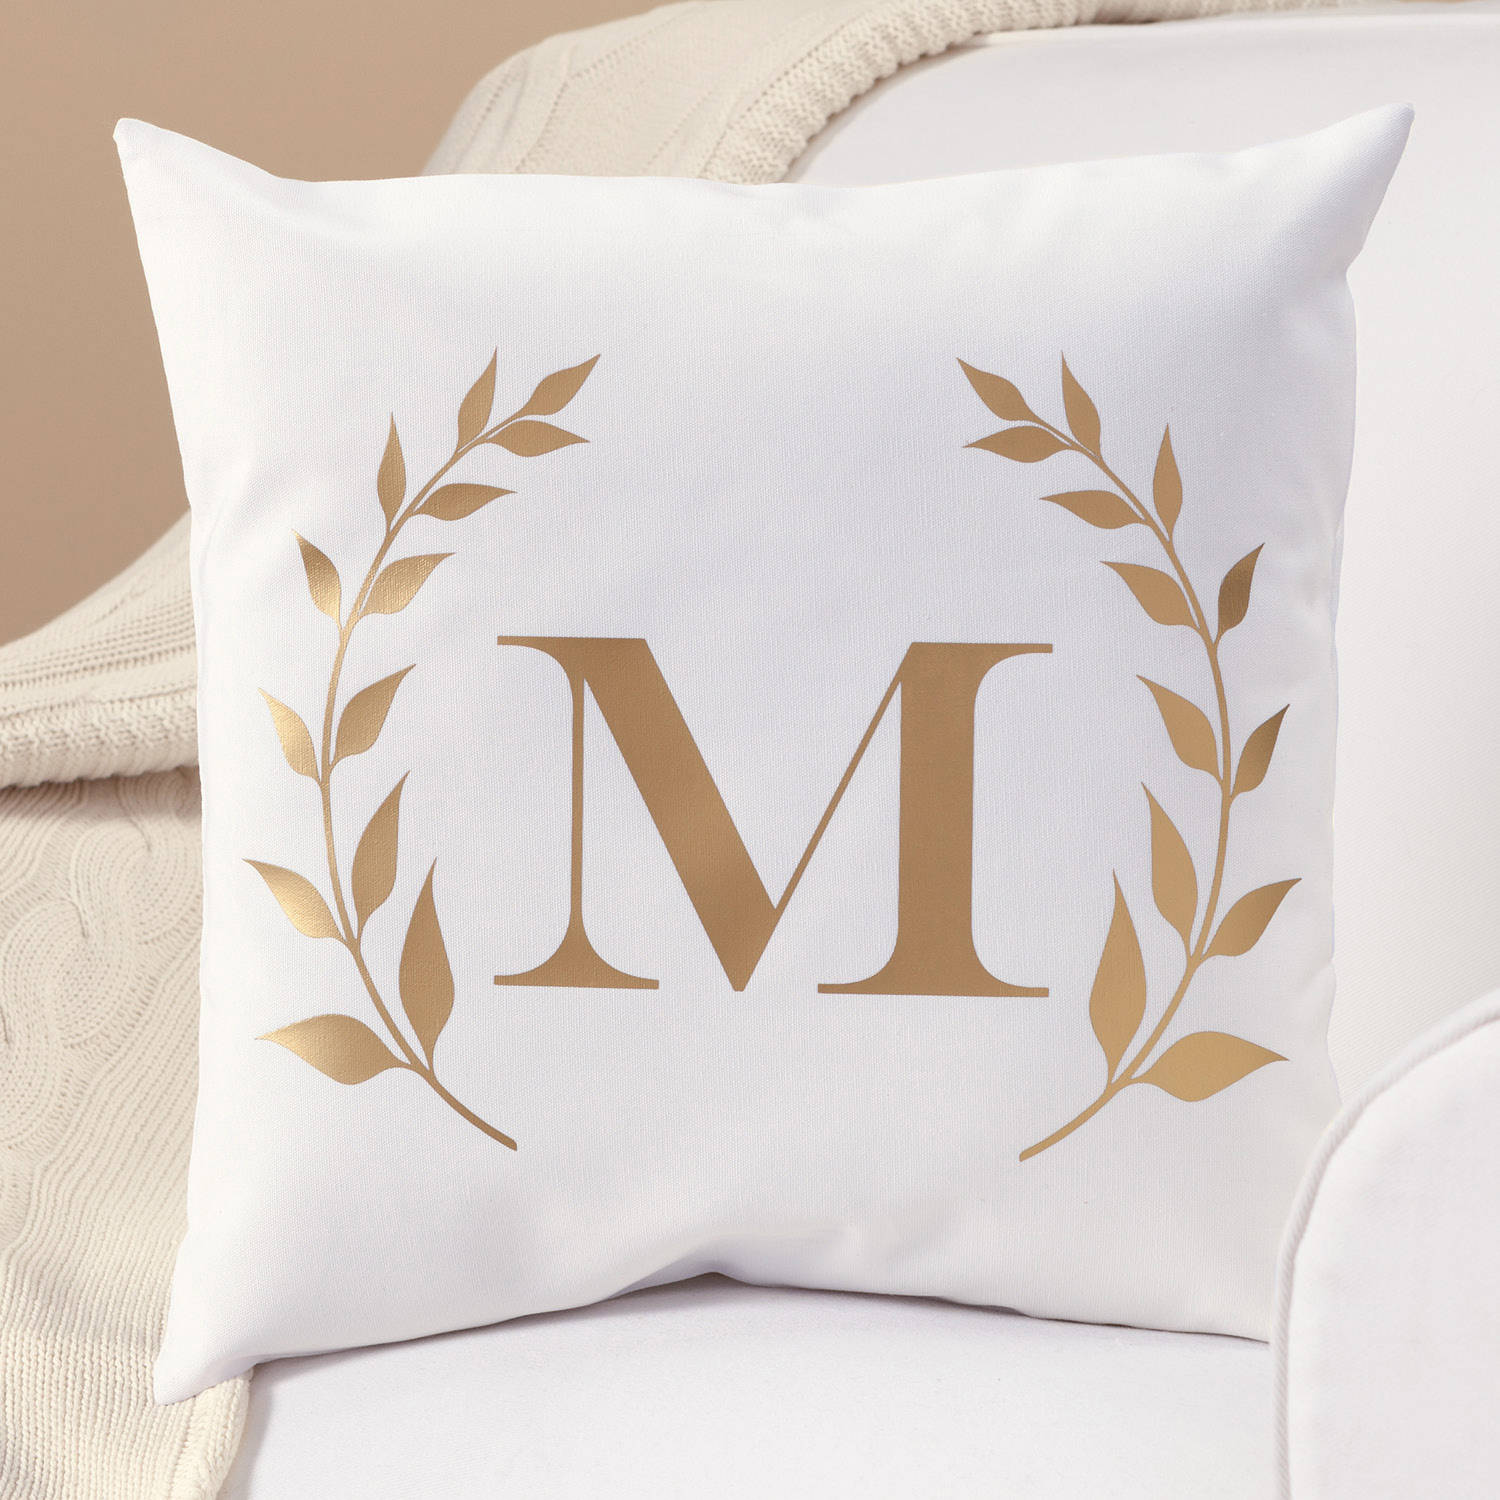 Lumbar Pillow Covers | Rose Gold Pillow | Gold Throw Pillows